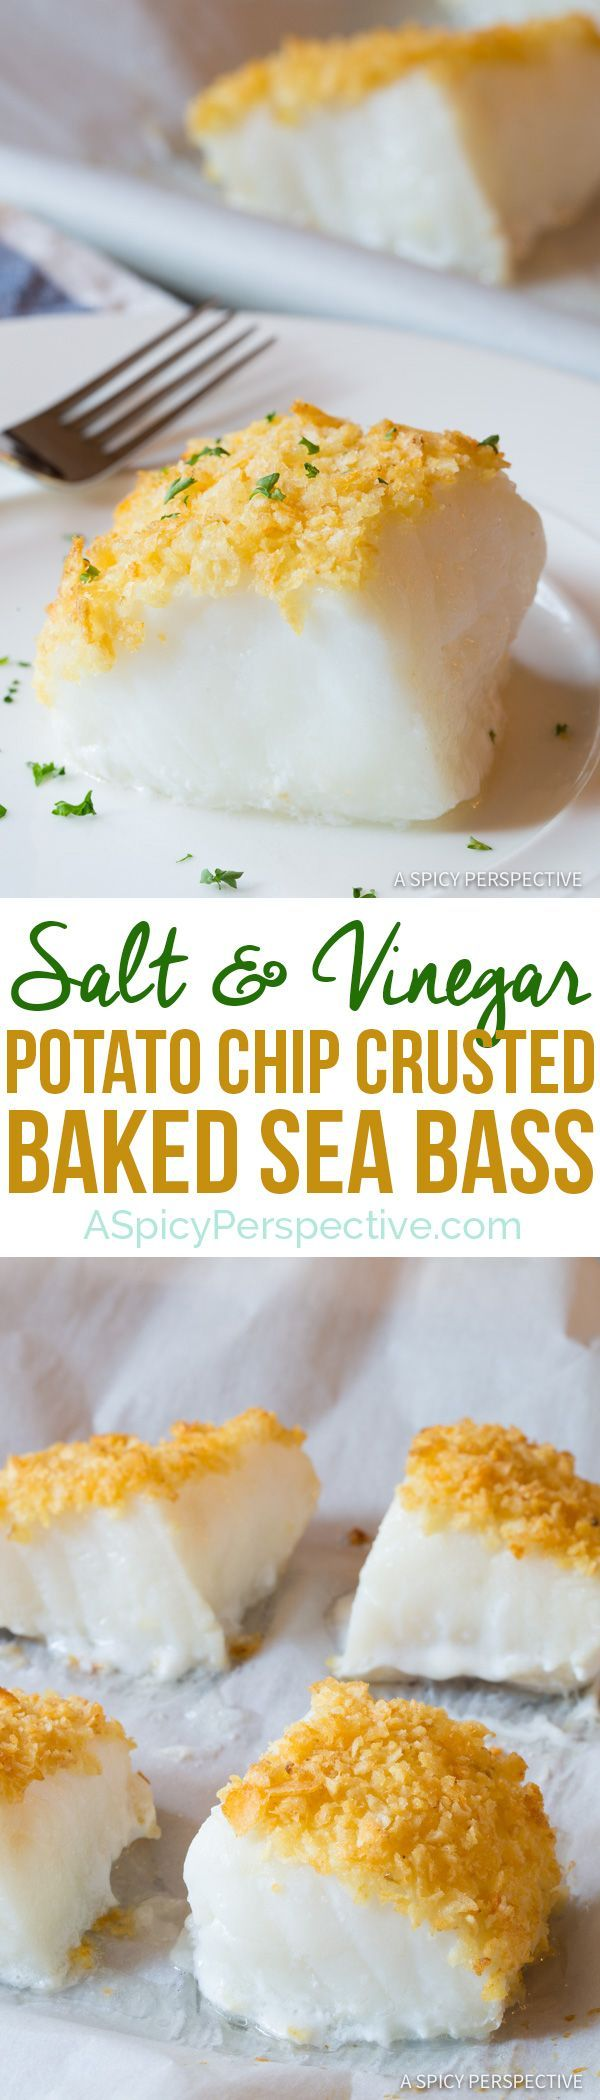 3-Ingredient Salt and Vinegar Potato Chip Crusted Baked Sea Bass Recipe (Healthy Fish and Chips!)   http://ASpicyPerspective.com